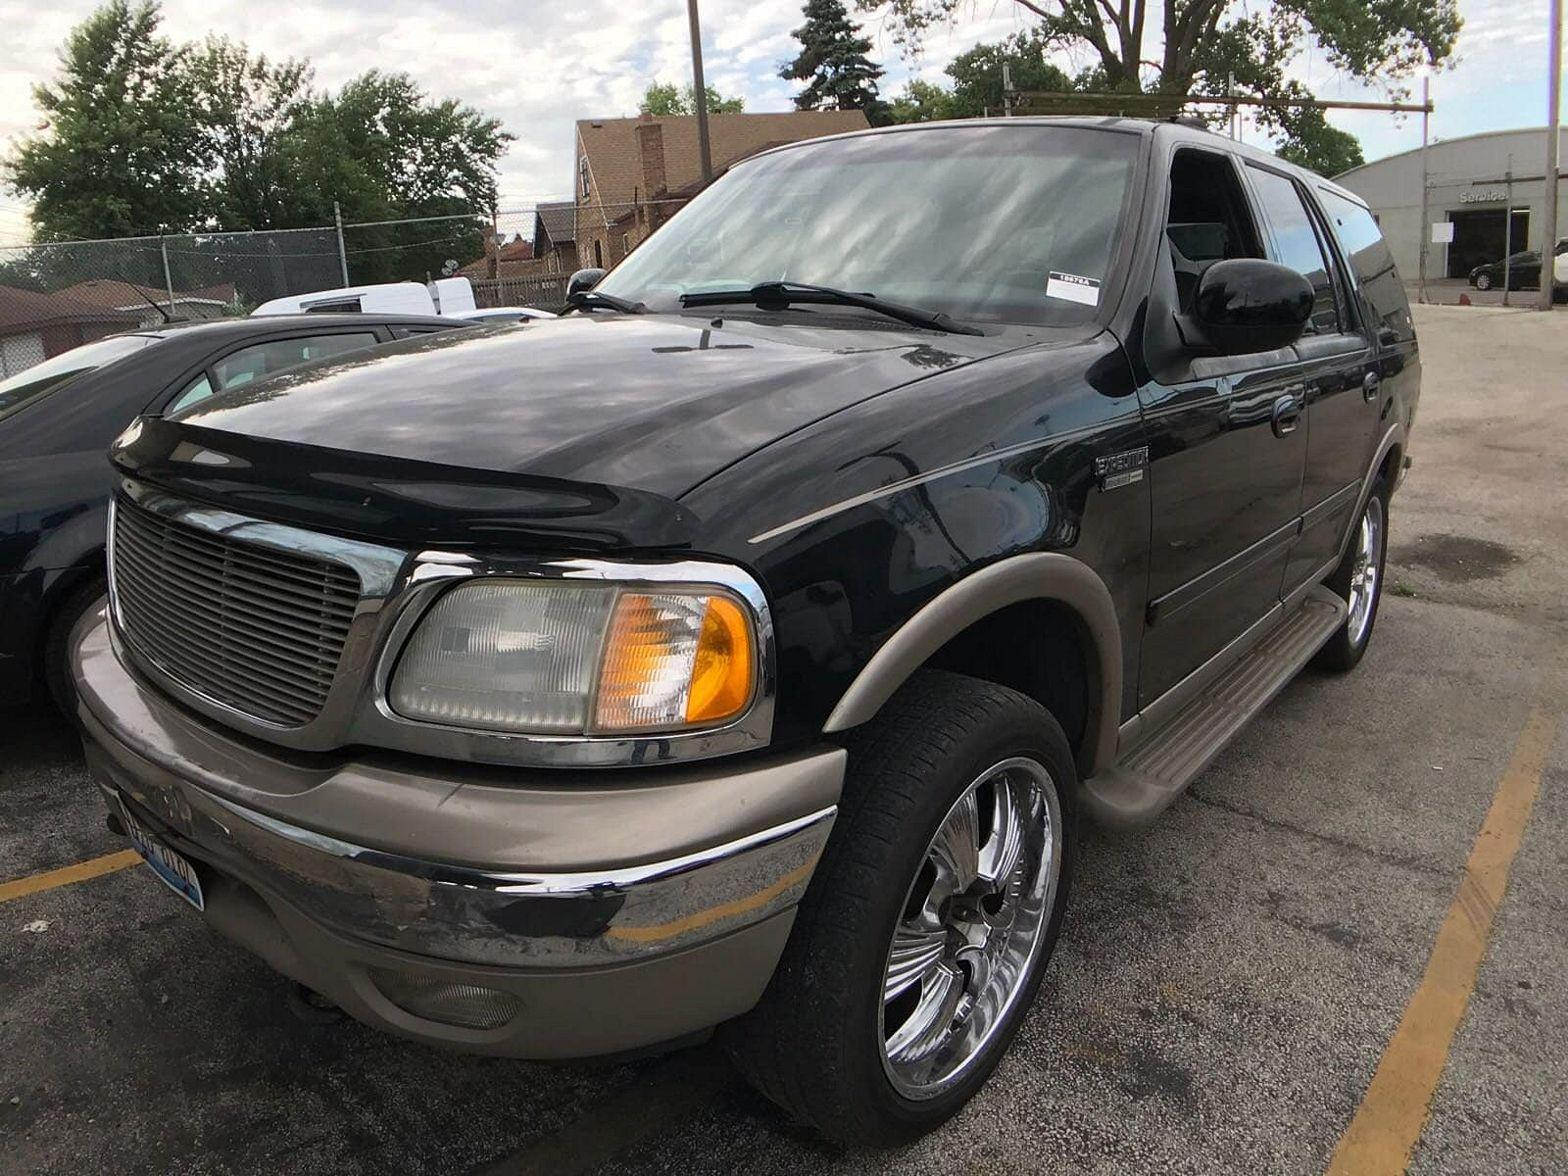 2002 Ford Expedition $990